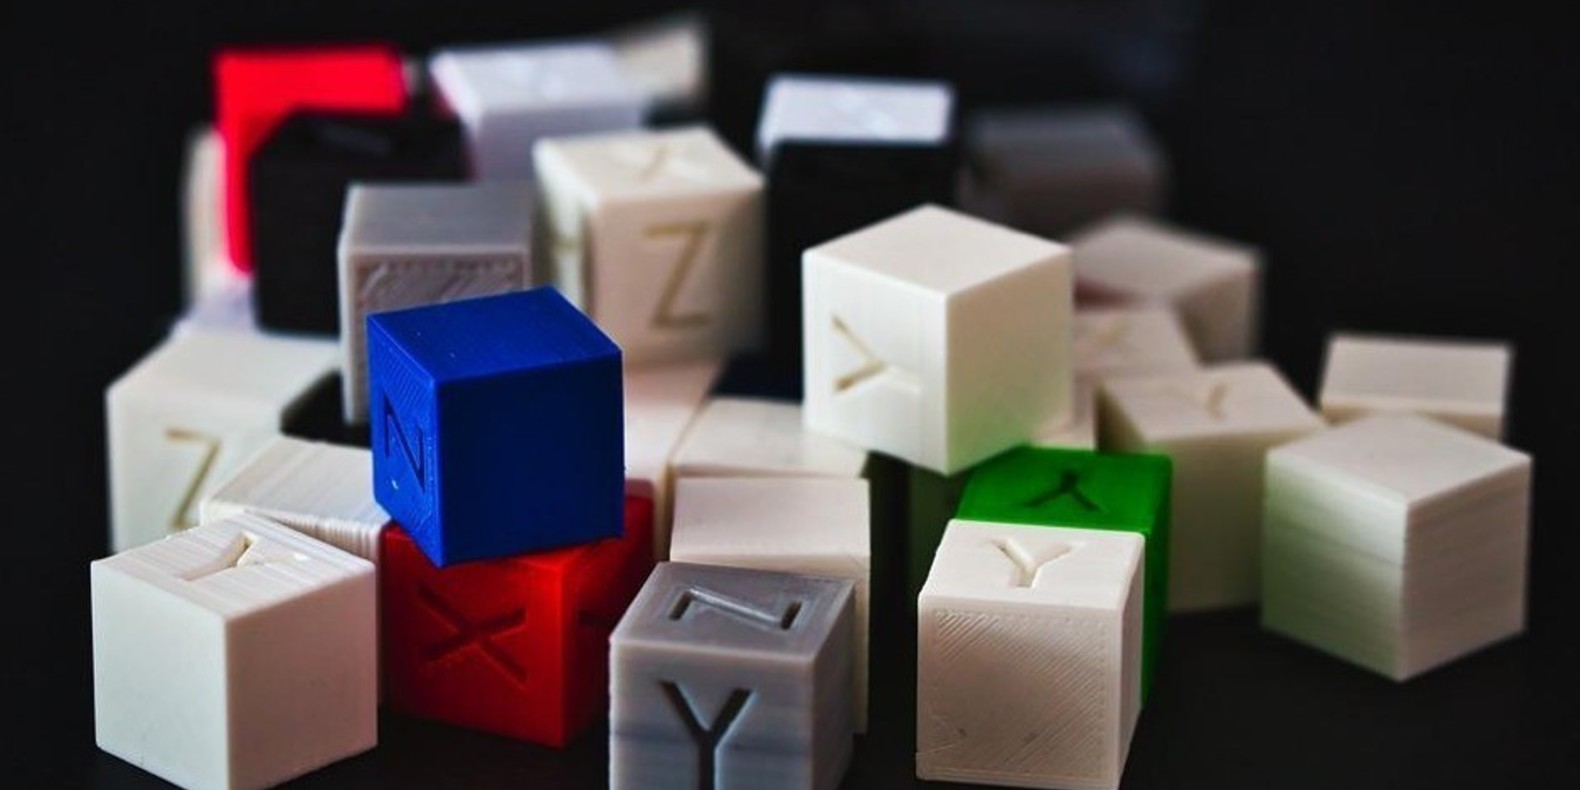 Using a 3D Printer for iGaming Themed Accessories